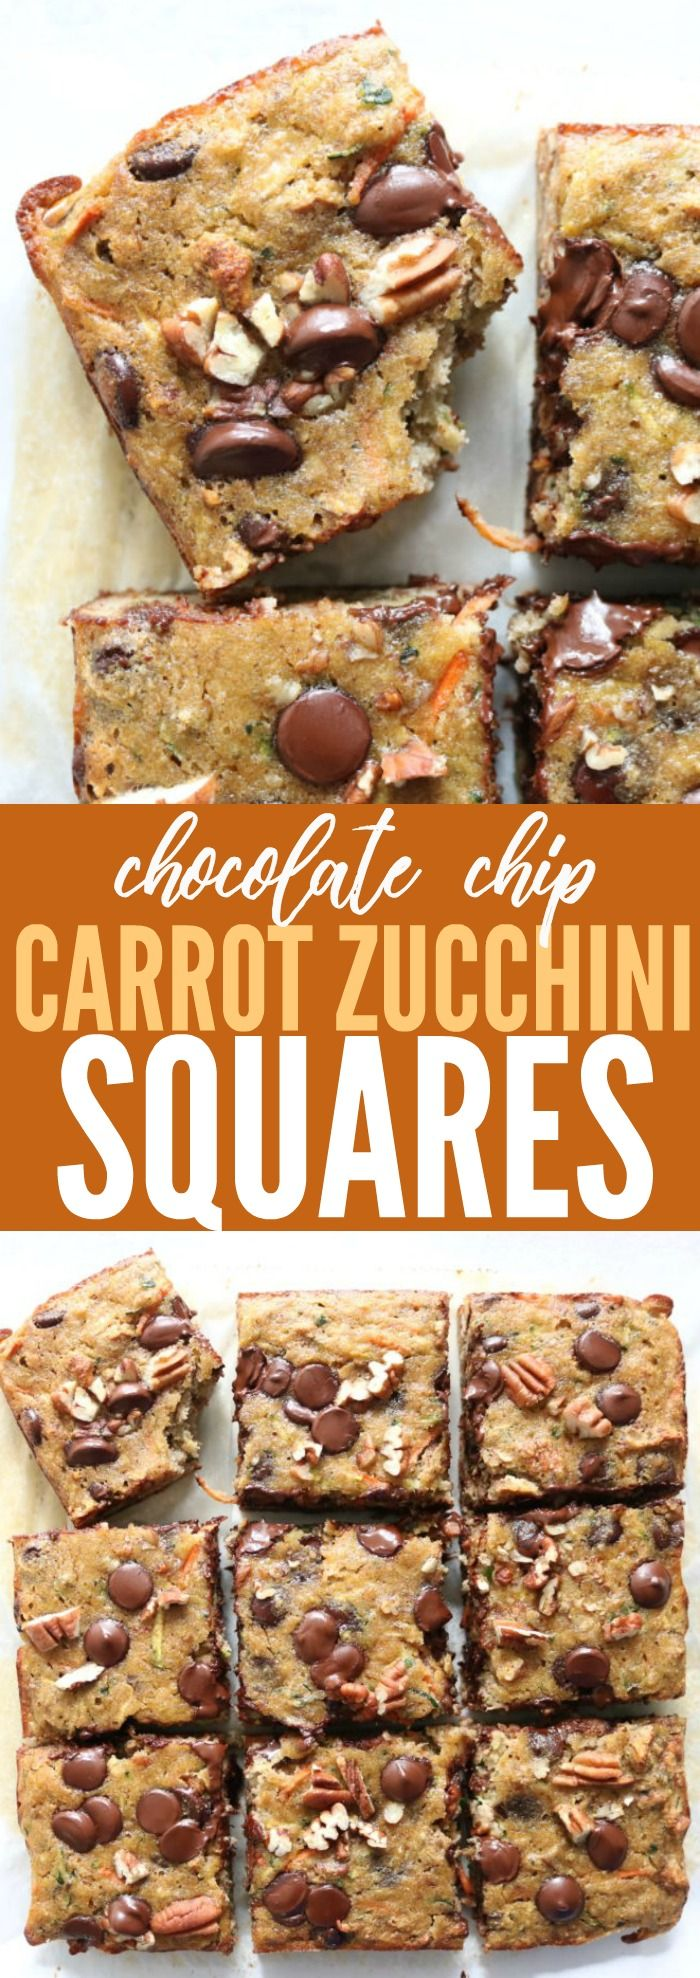 The best low carb, gluten free, and dairy free recipe for chocolate chip zucchini squares! Super easy and delicious! You need this in your life!! thetoastedpinenut.com #lowcarb #glutenfree #zucchini